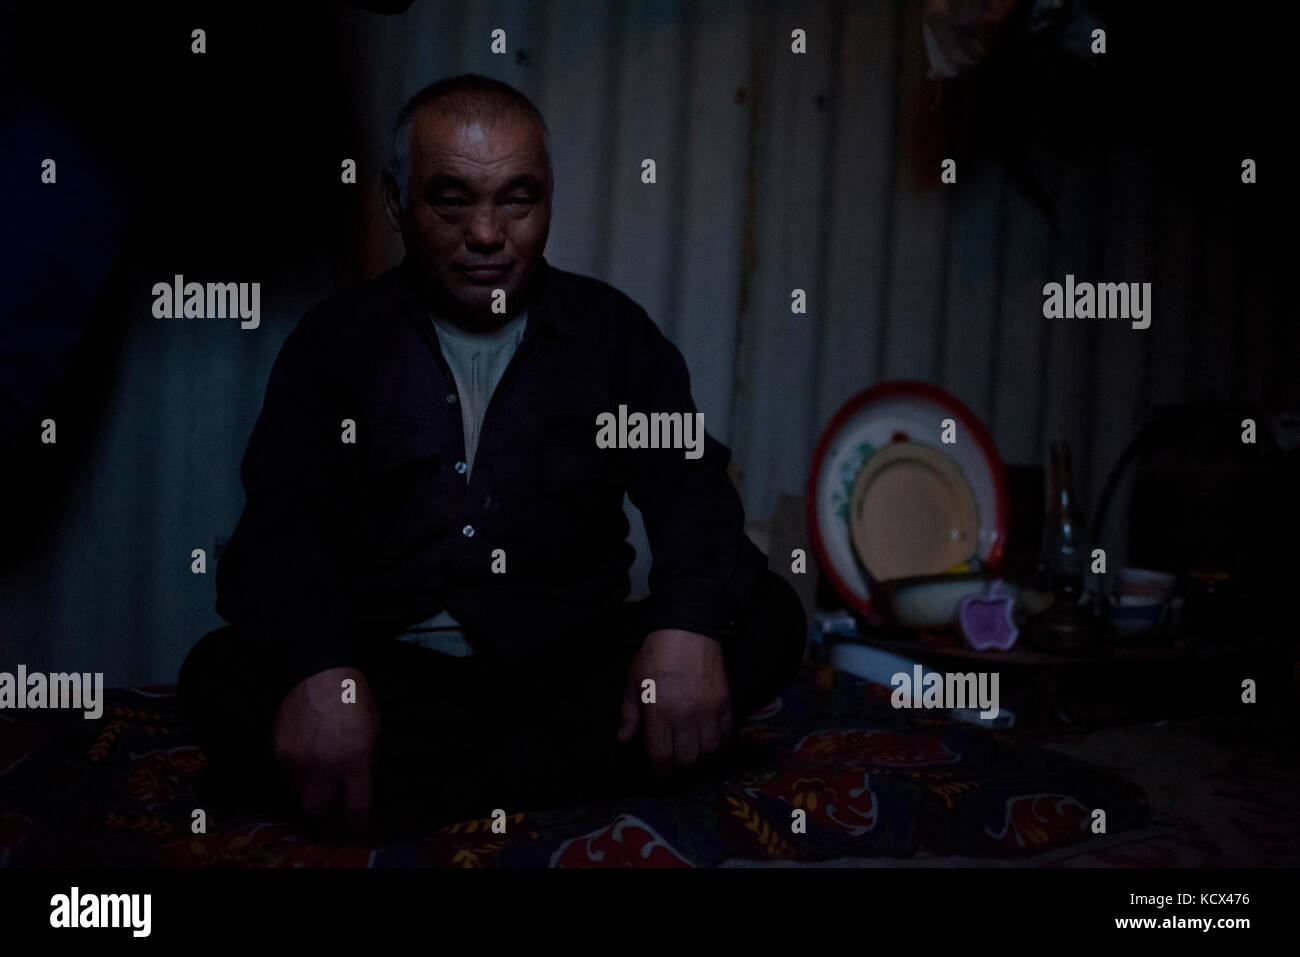 A few fishermen come to settle in Tastubek for the winter season, leaving women and children in Aral or Baikonur. - Stock Image